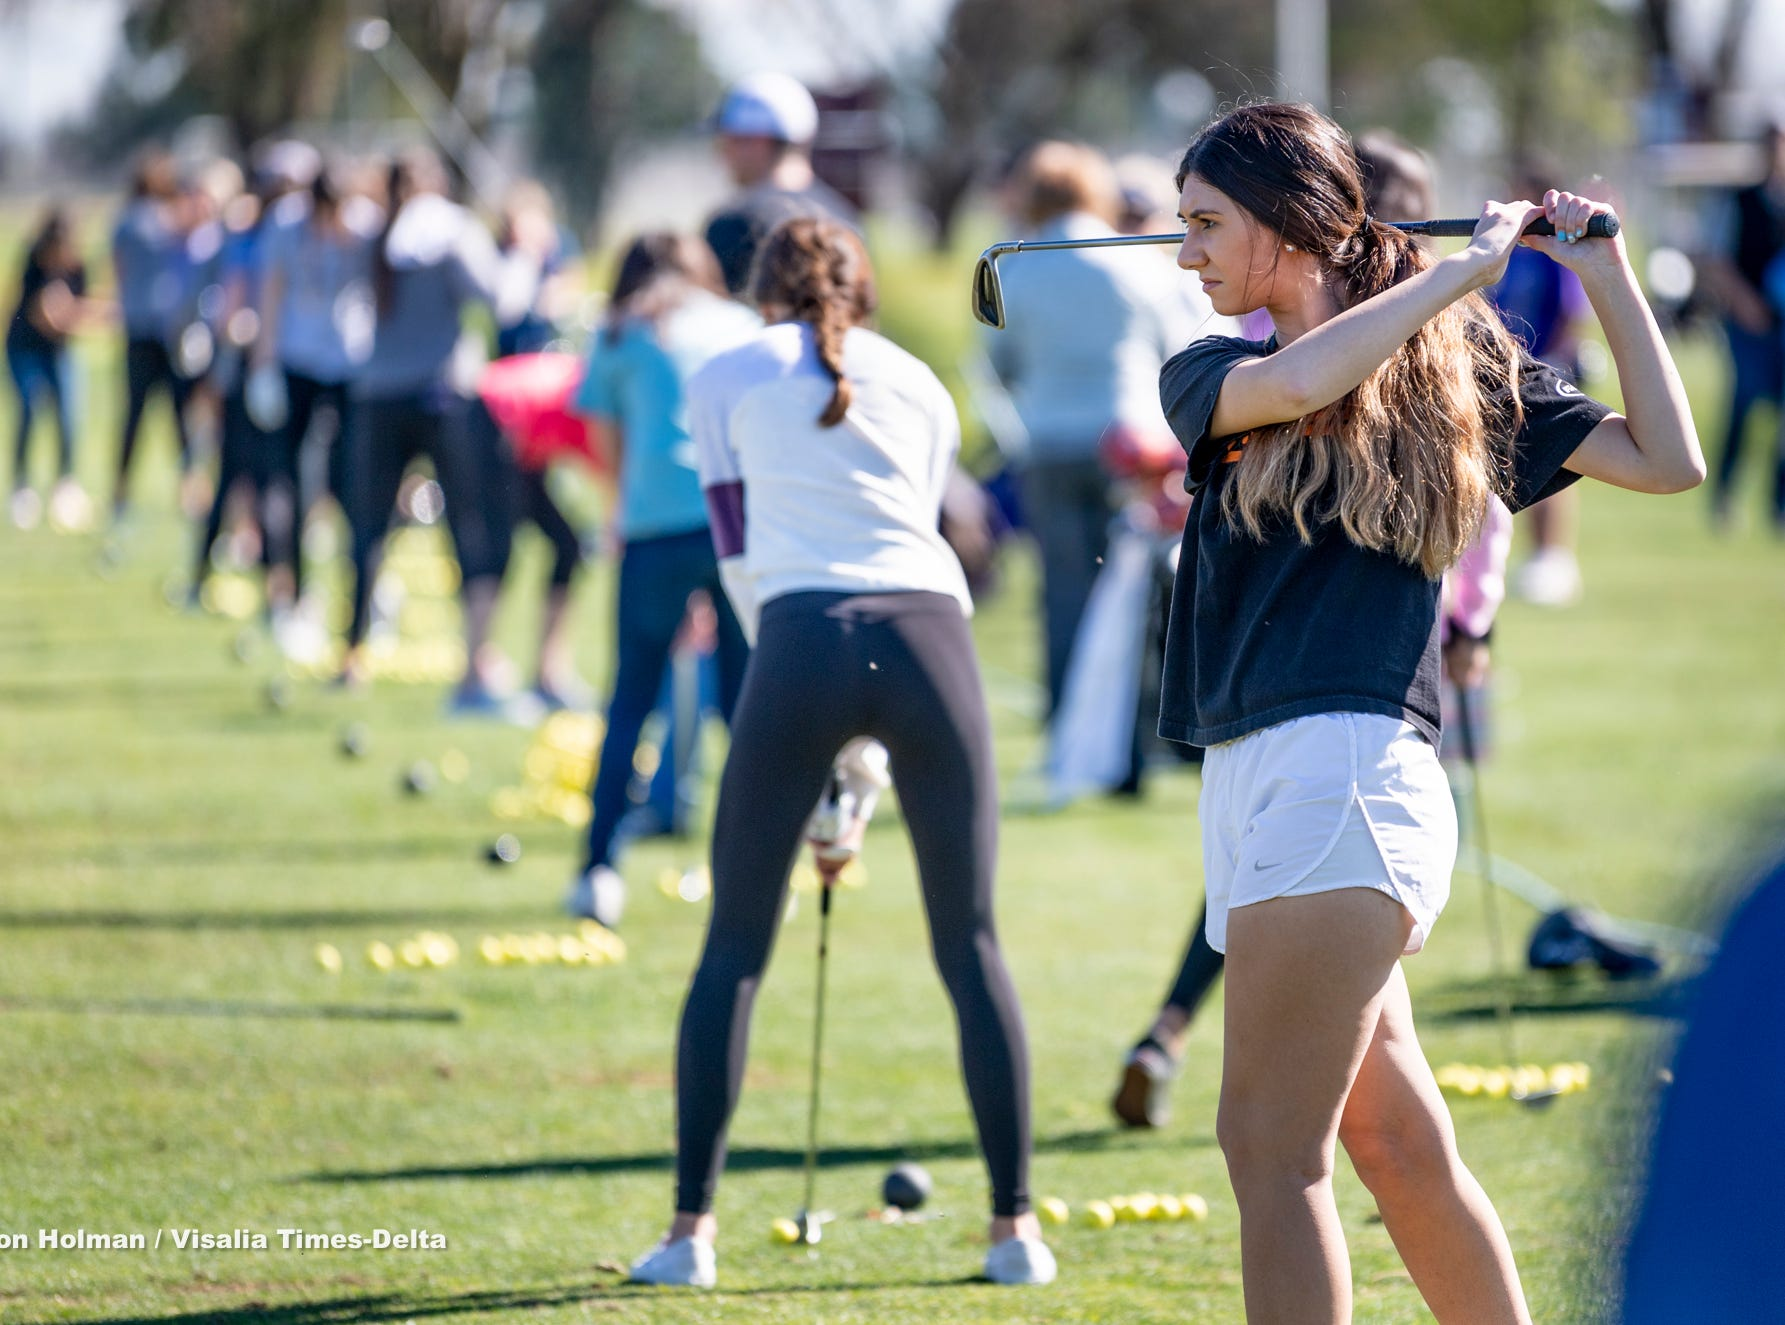 Tulare Western's Carsen Reed watches her shot during a clinic with training professionals from Backswing Golf Events and Fresno State women's golf coaches on Thursday, February 28, 2019. Organizers held the free event at the Tulare Golf Course to help grow the game of golf in the Central Valley.